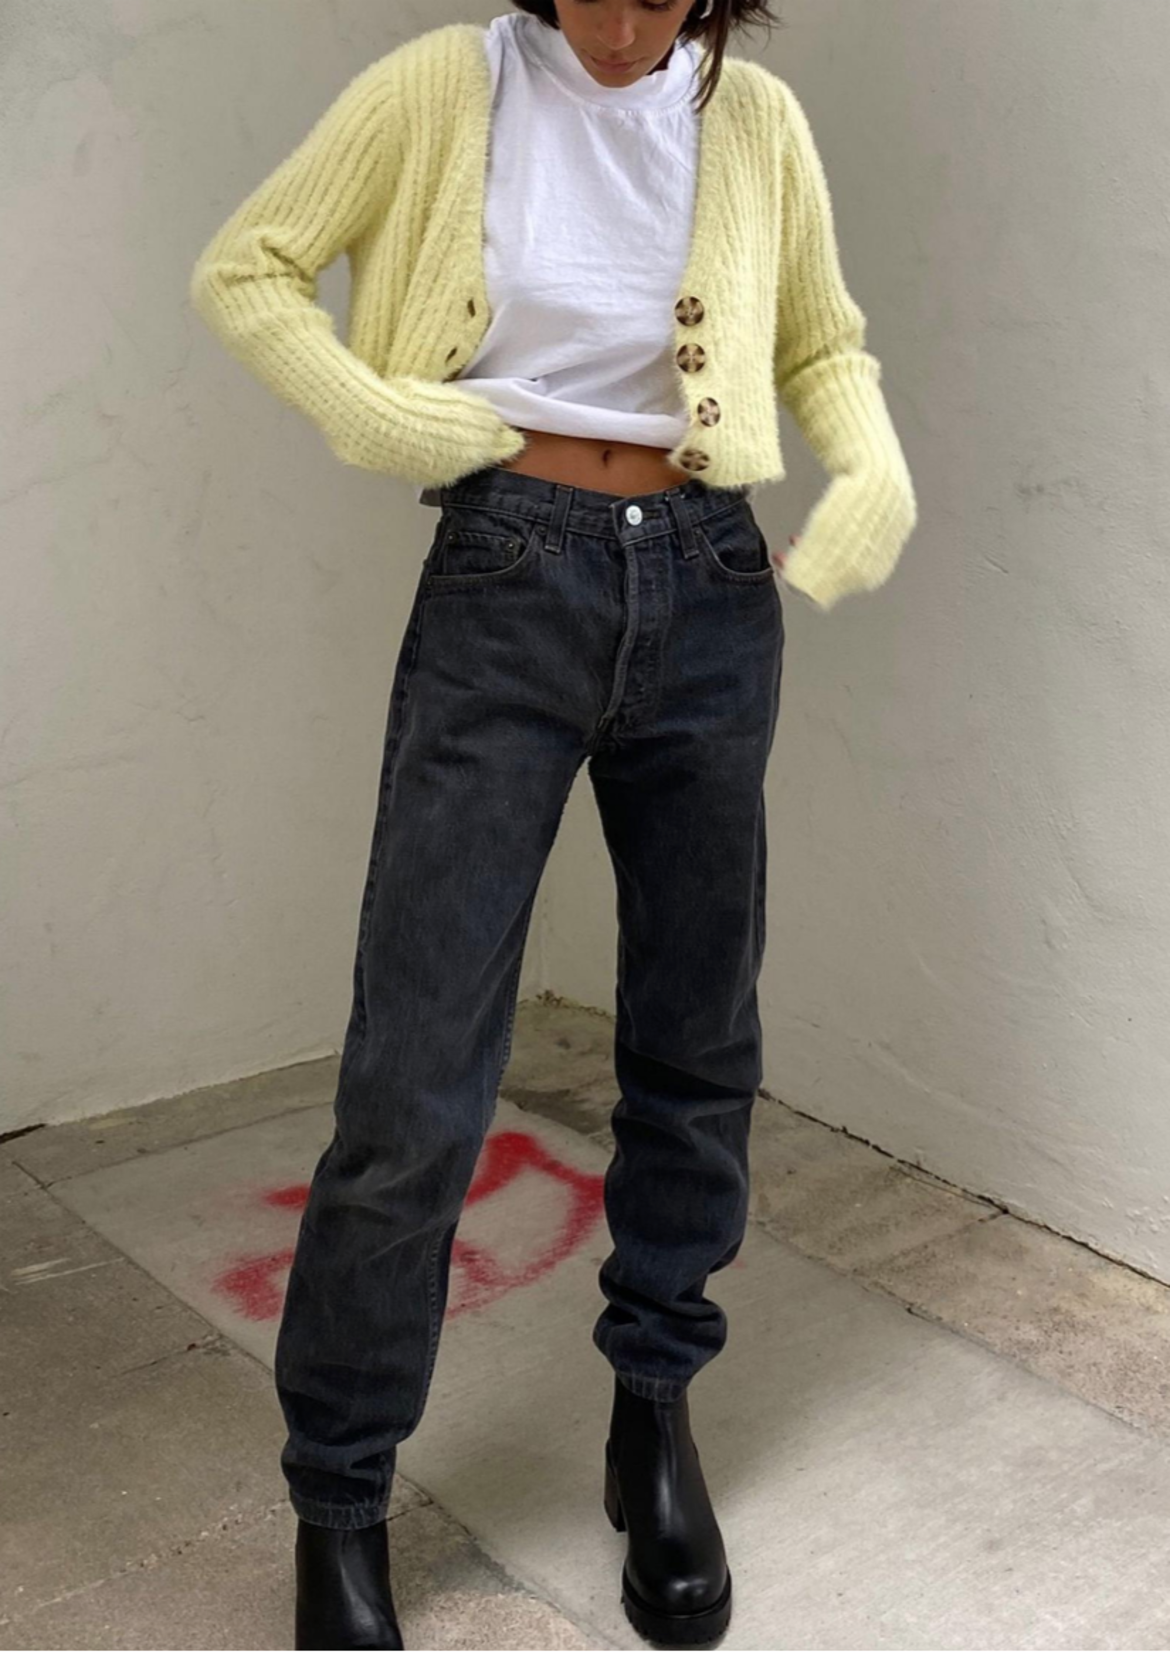 Urban Renewal Vintage Levi's 水洗黑色牛仔褲 HK$621 from urban outfitters